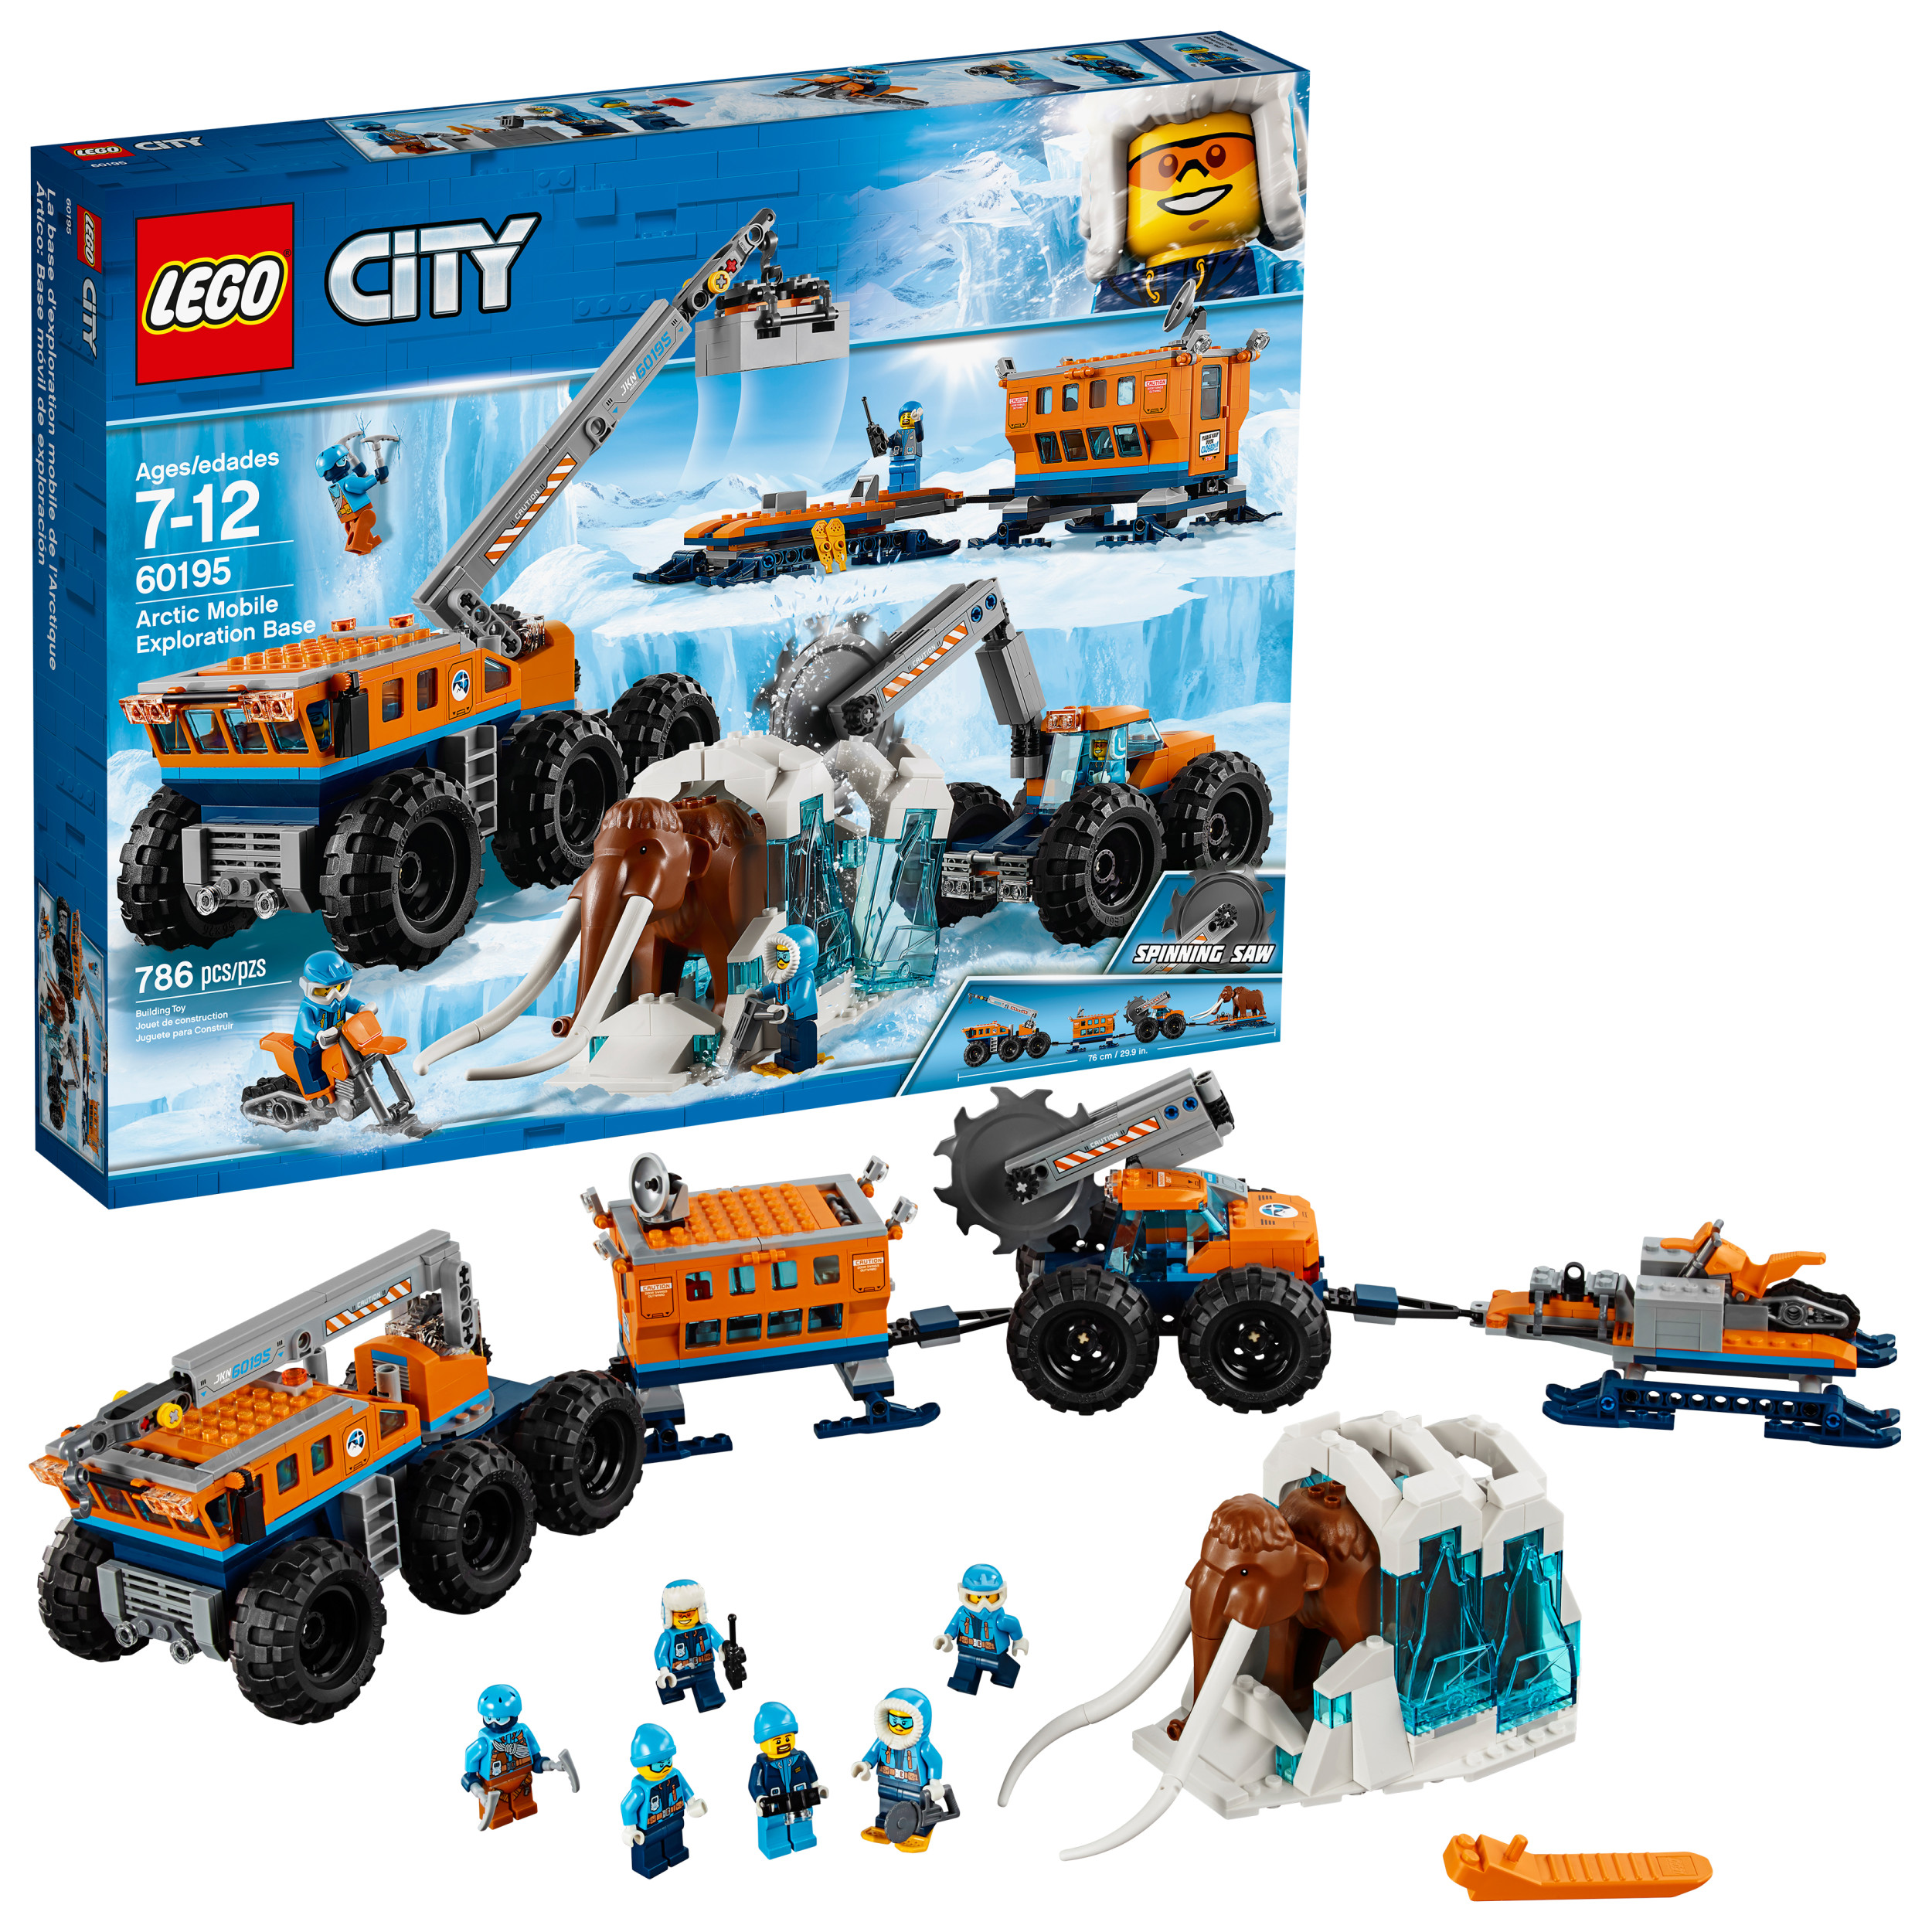 LEGO City Arctic Mobile Exploration Base 60195 (786 Pieces)